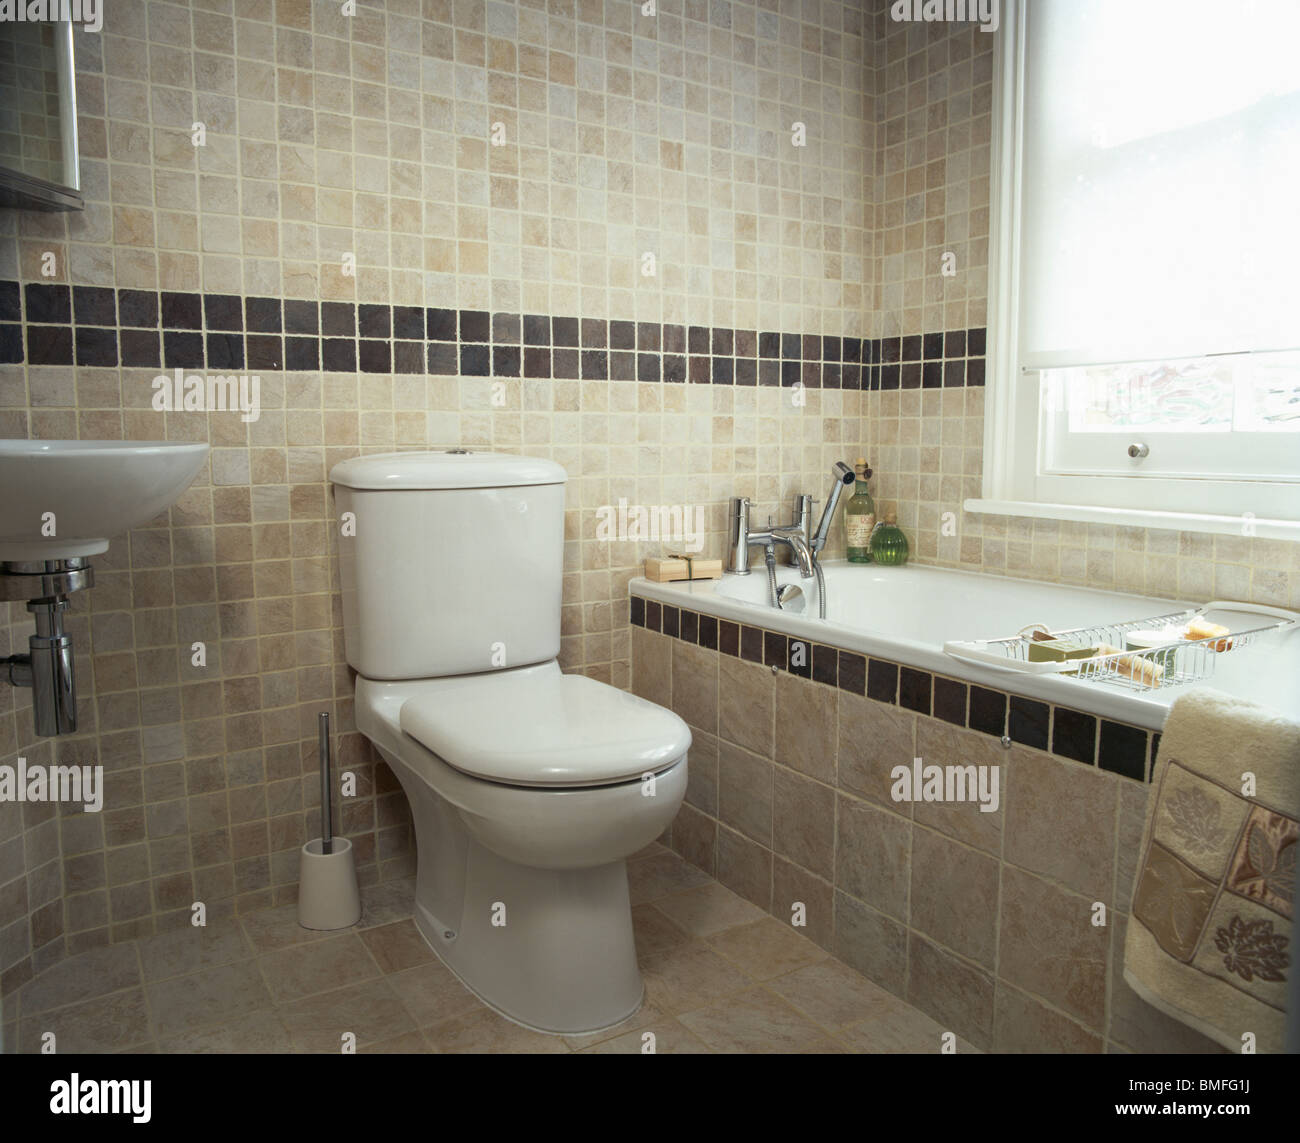 Toilet beside bath with tiled surround in modern beige tiled ...